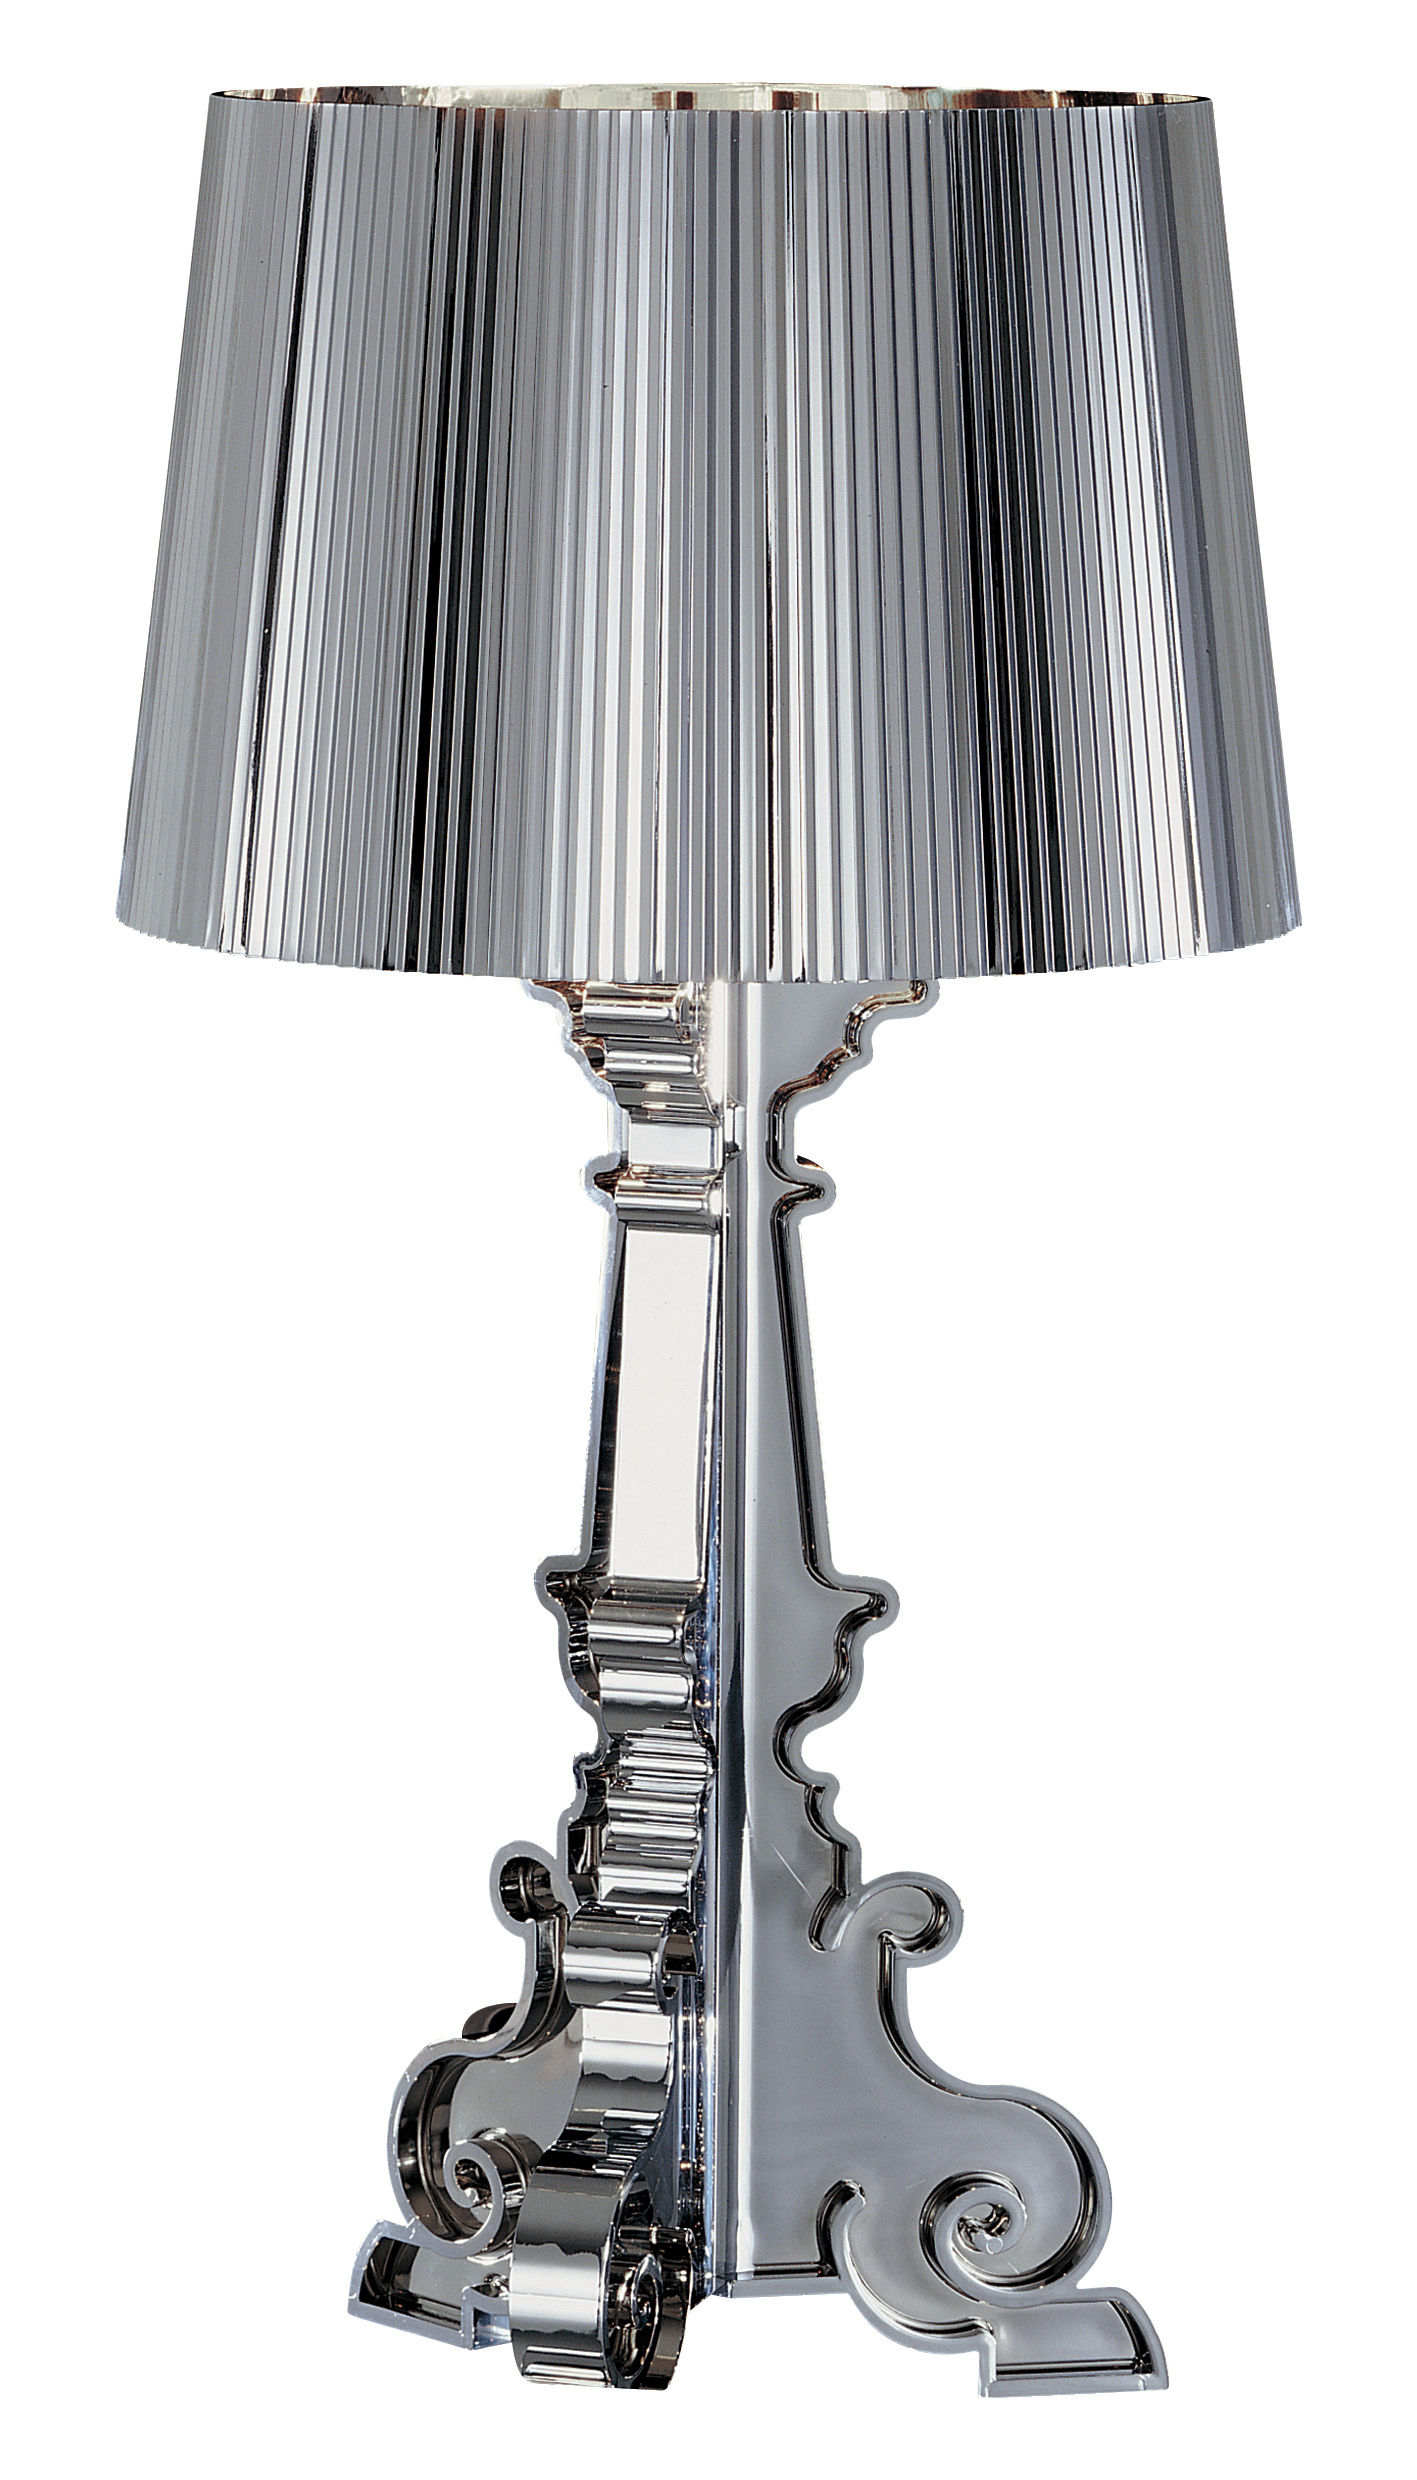 Lampe De Table Bourgie Chrome Kartell Chromée ø 37 Made In Design